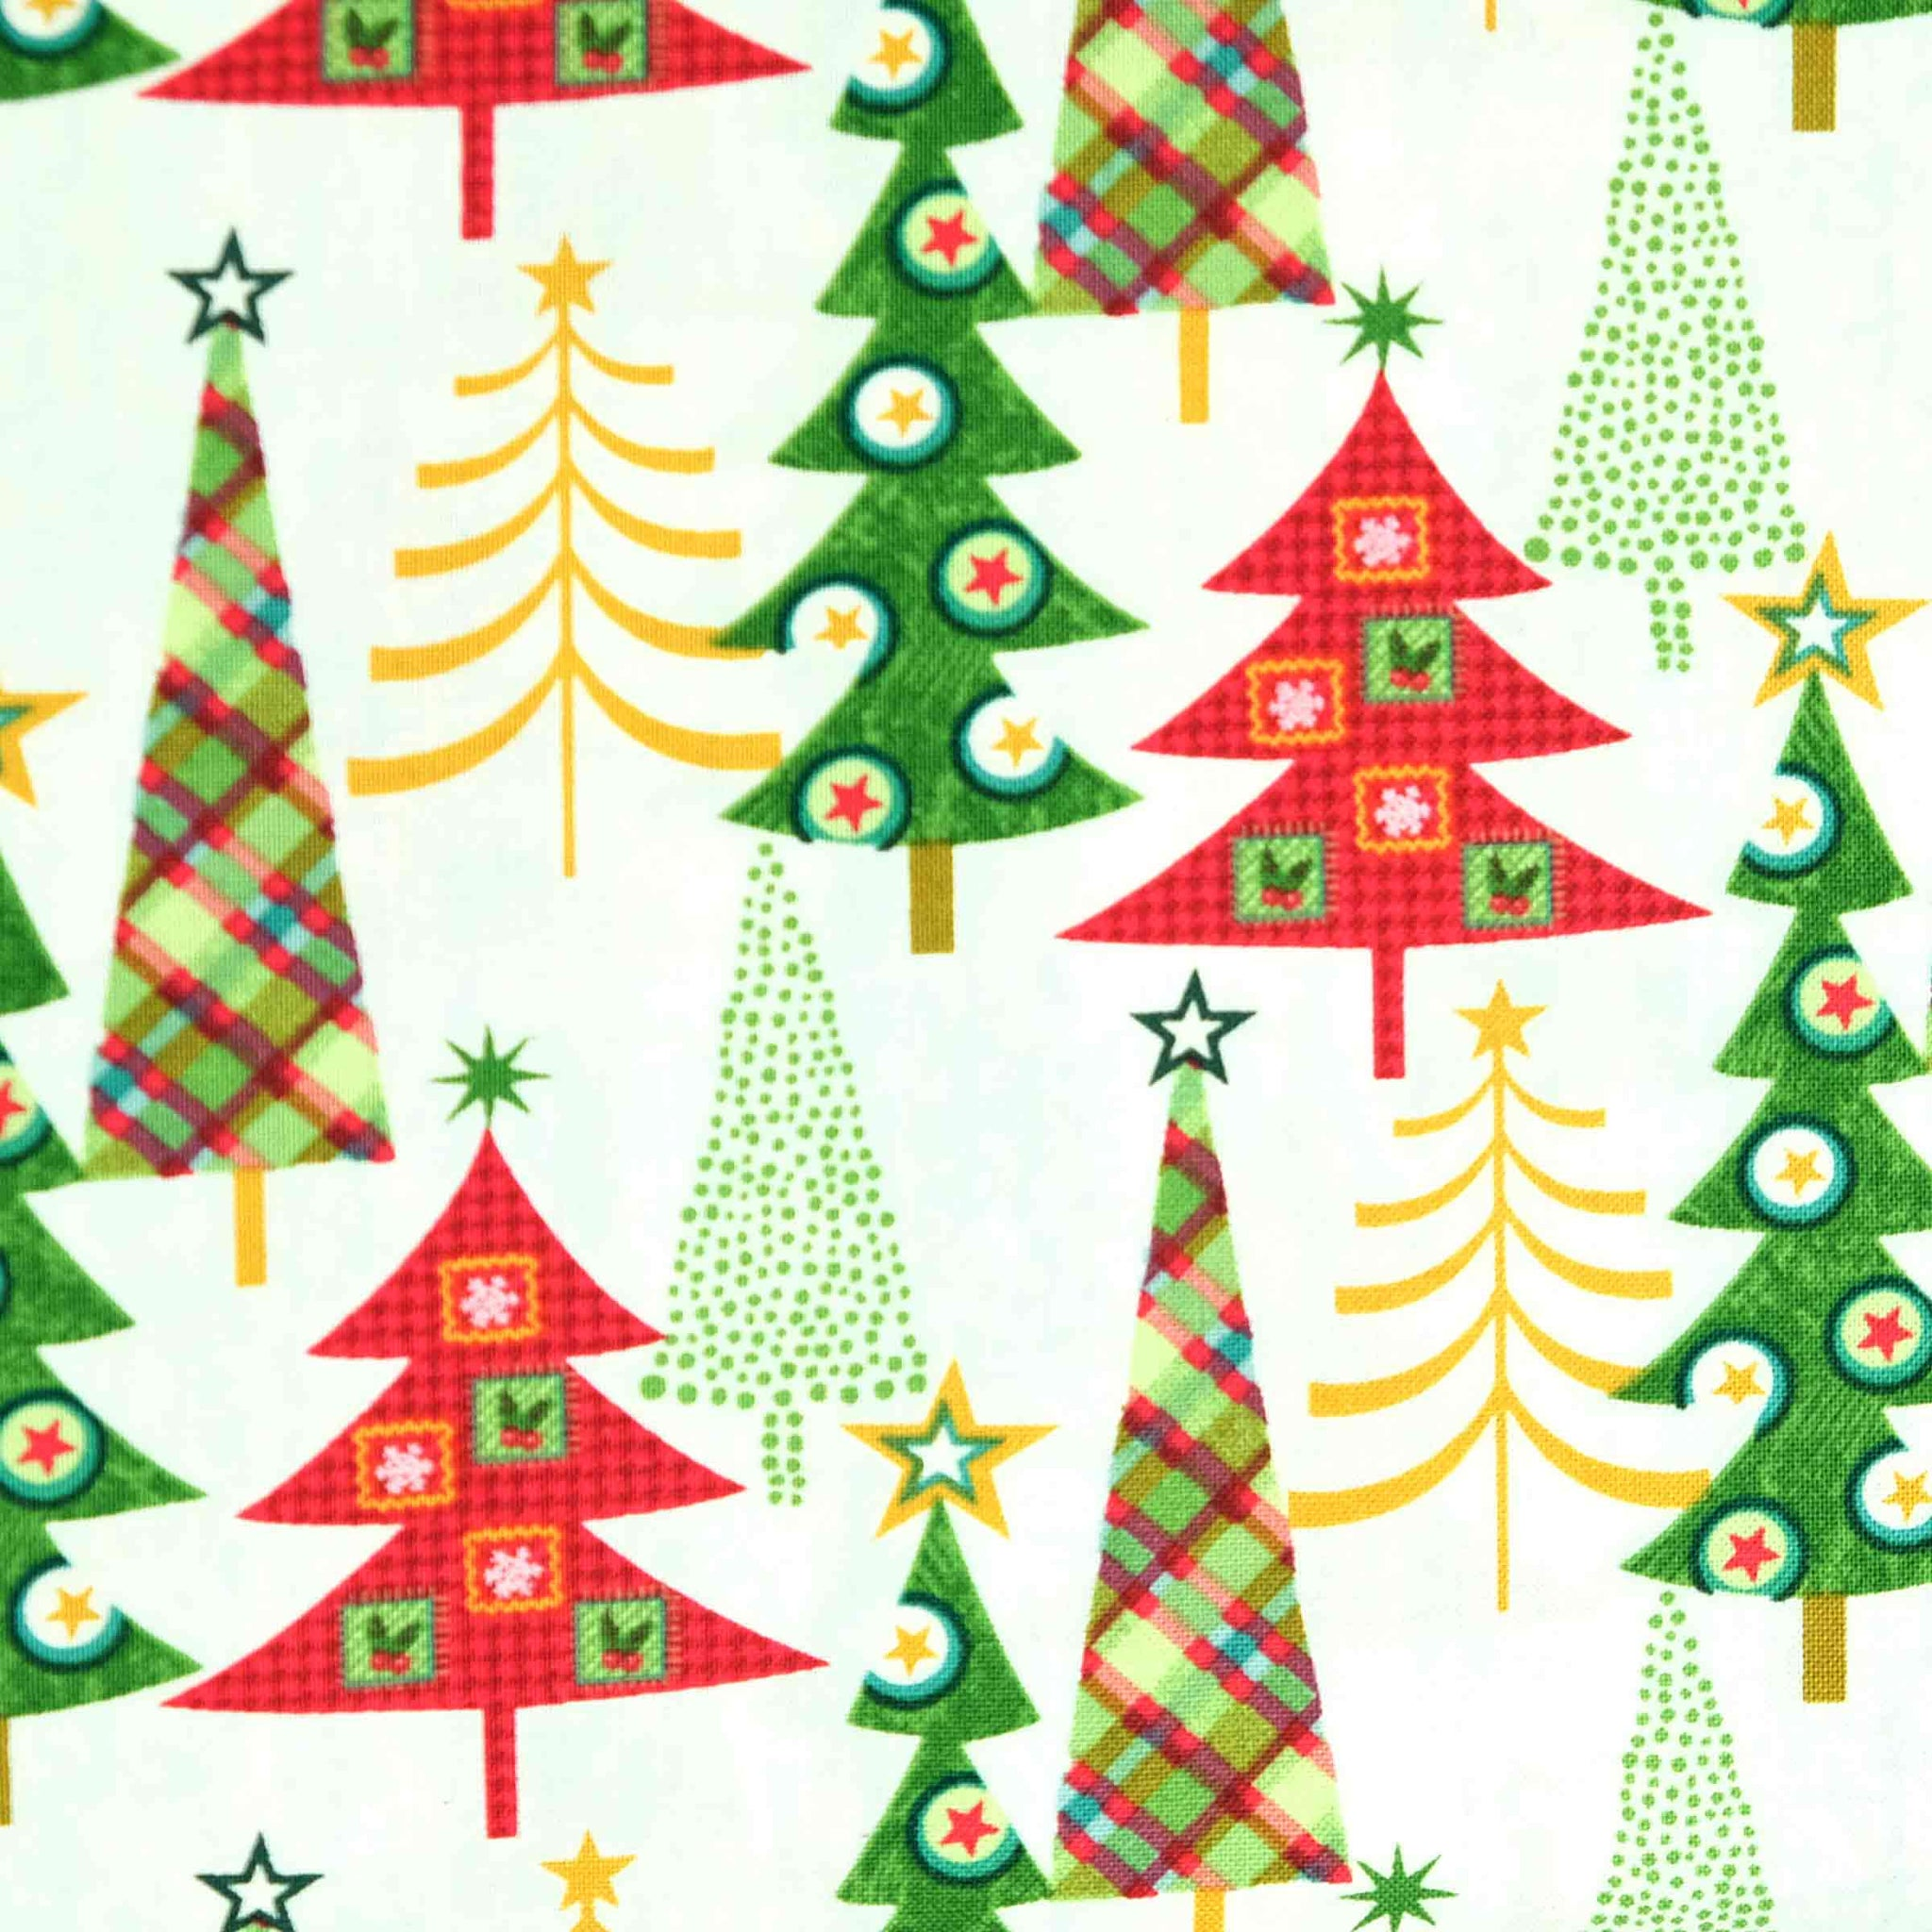 Studio E Fabrics 4752 Holly Jolly Christmas 4652-16 White